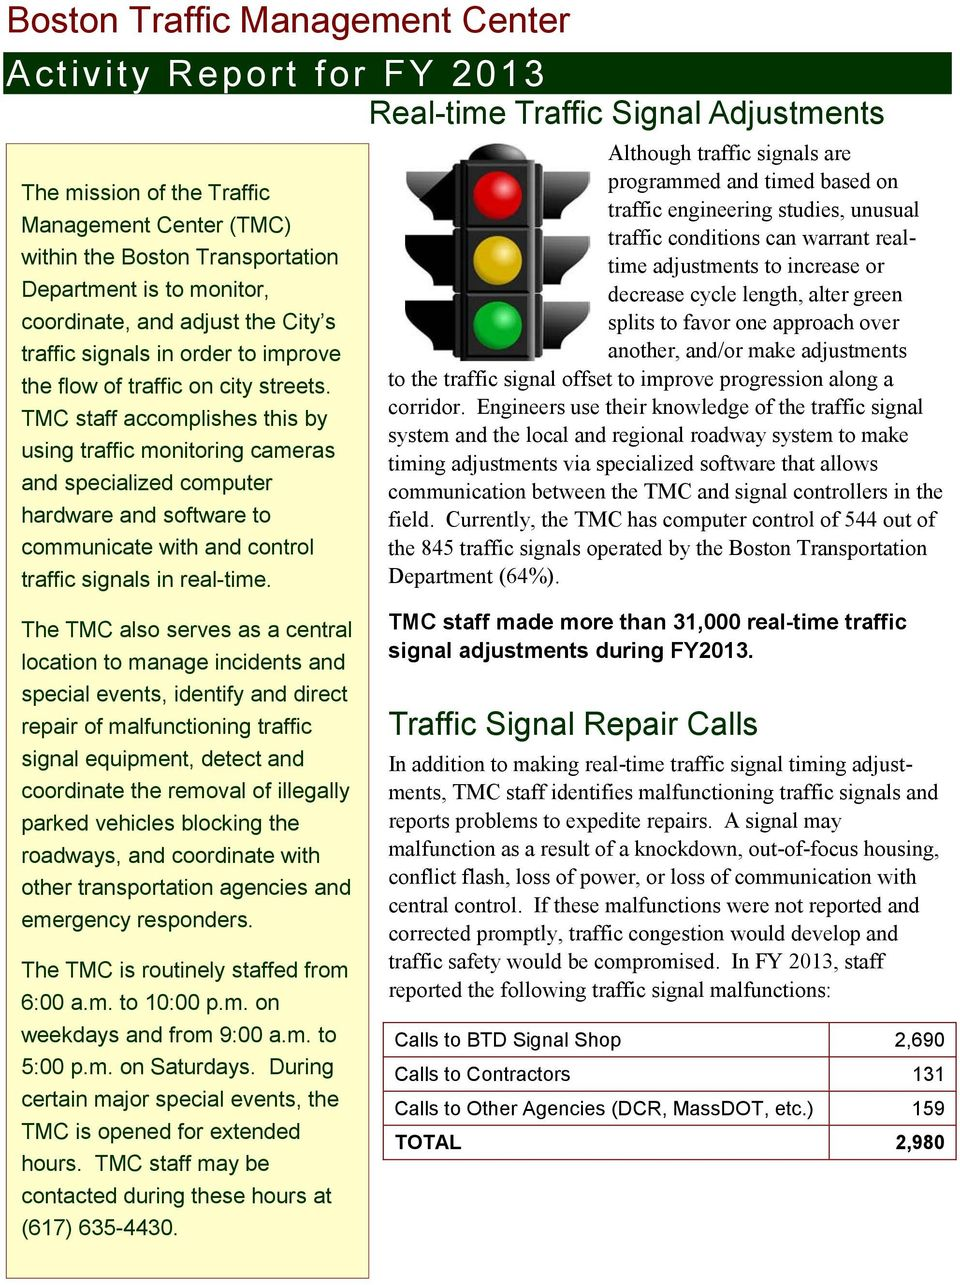 TMC staff accomplishes this by using traffic monitoring cameras and specialized computer hardware and software to communicate with and control traffic signals in real-time.